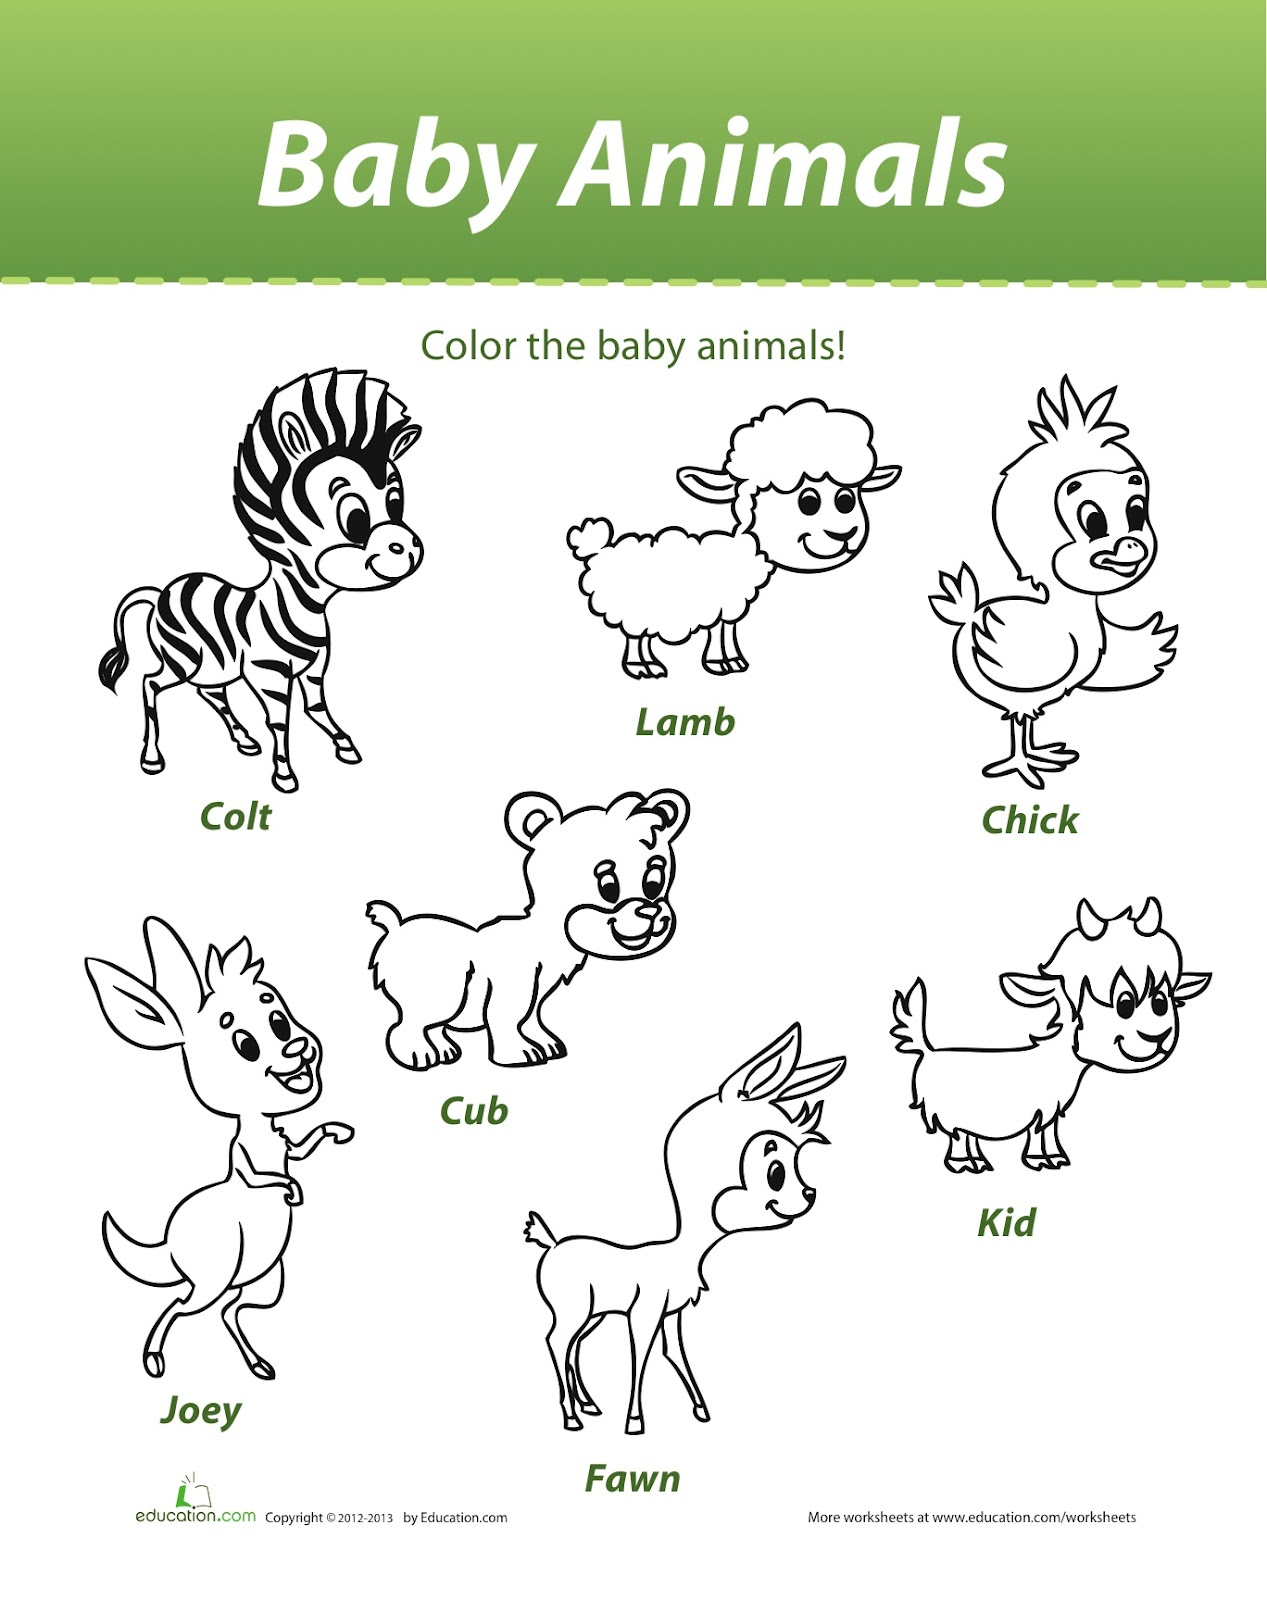 luna and lara baby animals colouring sheet. Black Bedroom Furniture Sets. Home Design Ideas